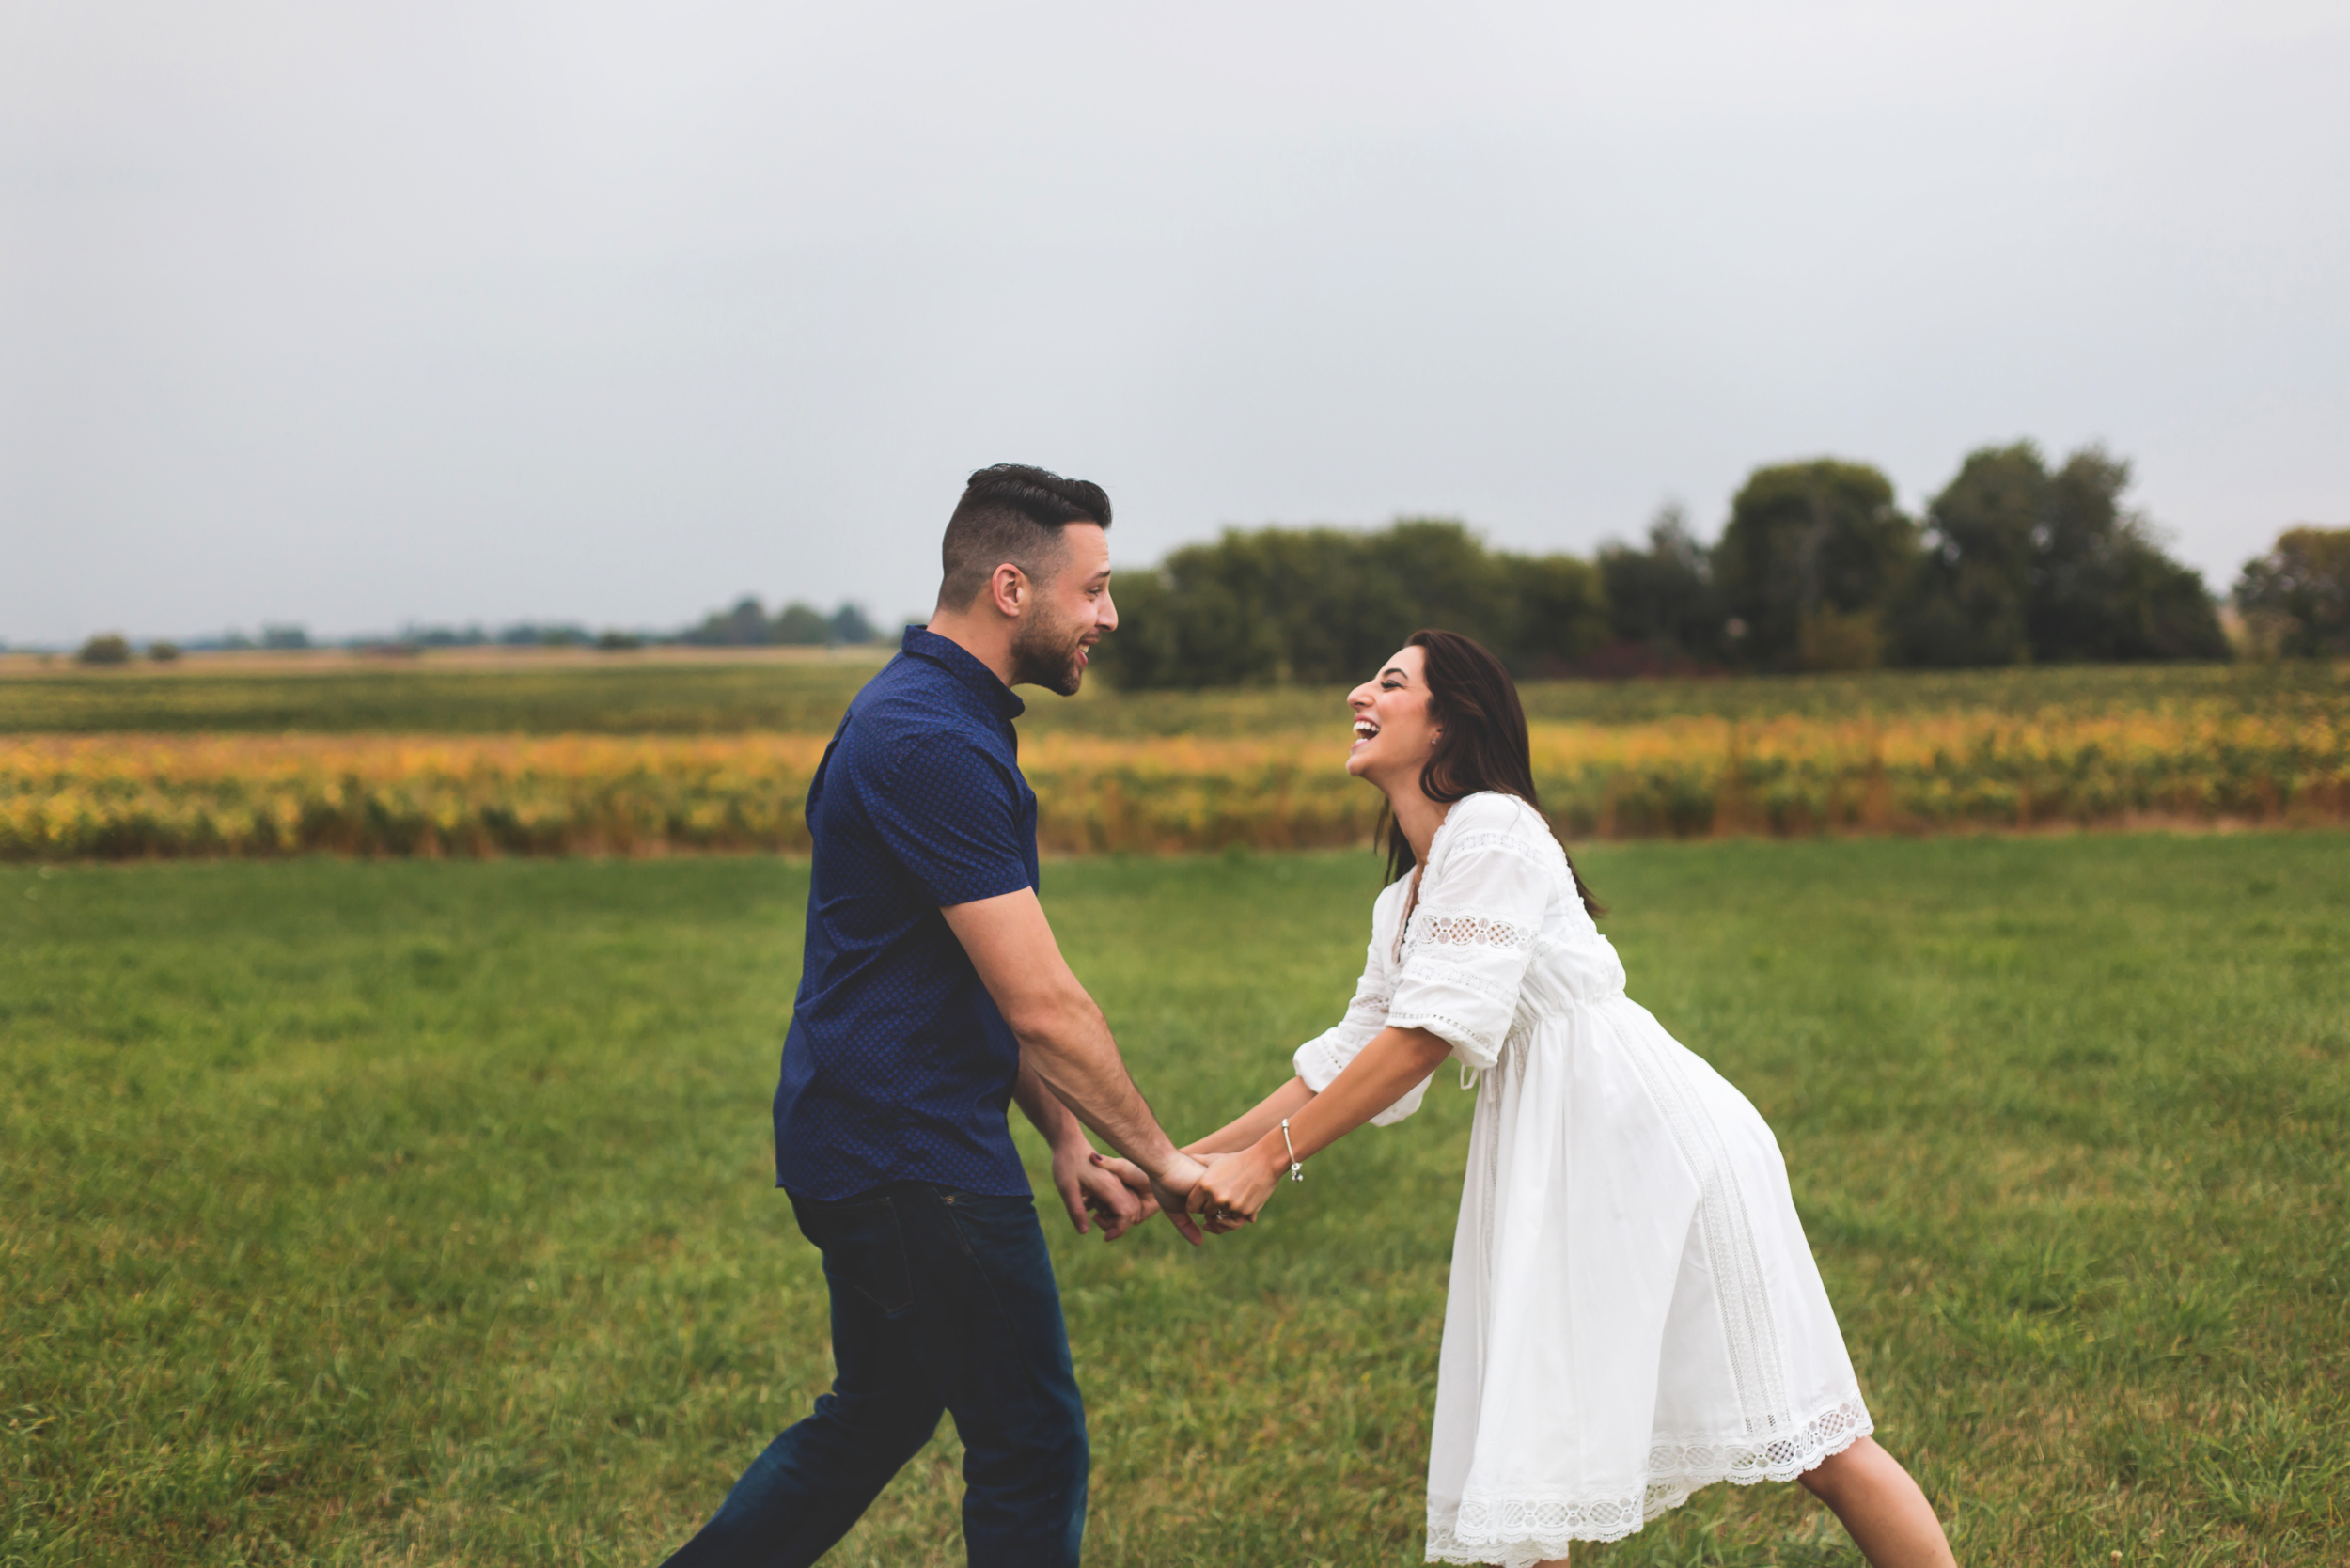 Engagement-Session-Hamilton-Burlington-Oakville-Toronto-Niagara-Wedding-Photographer-Engaged-Photography-Brantford-Airport-HamOnt-Engaged-Moments-by-Lauren-Photo-Image-24.png